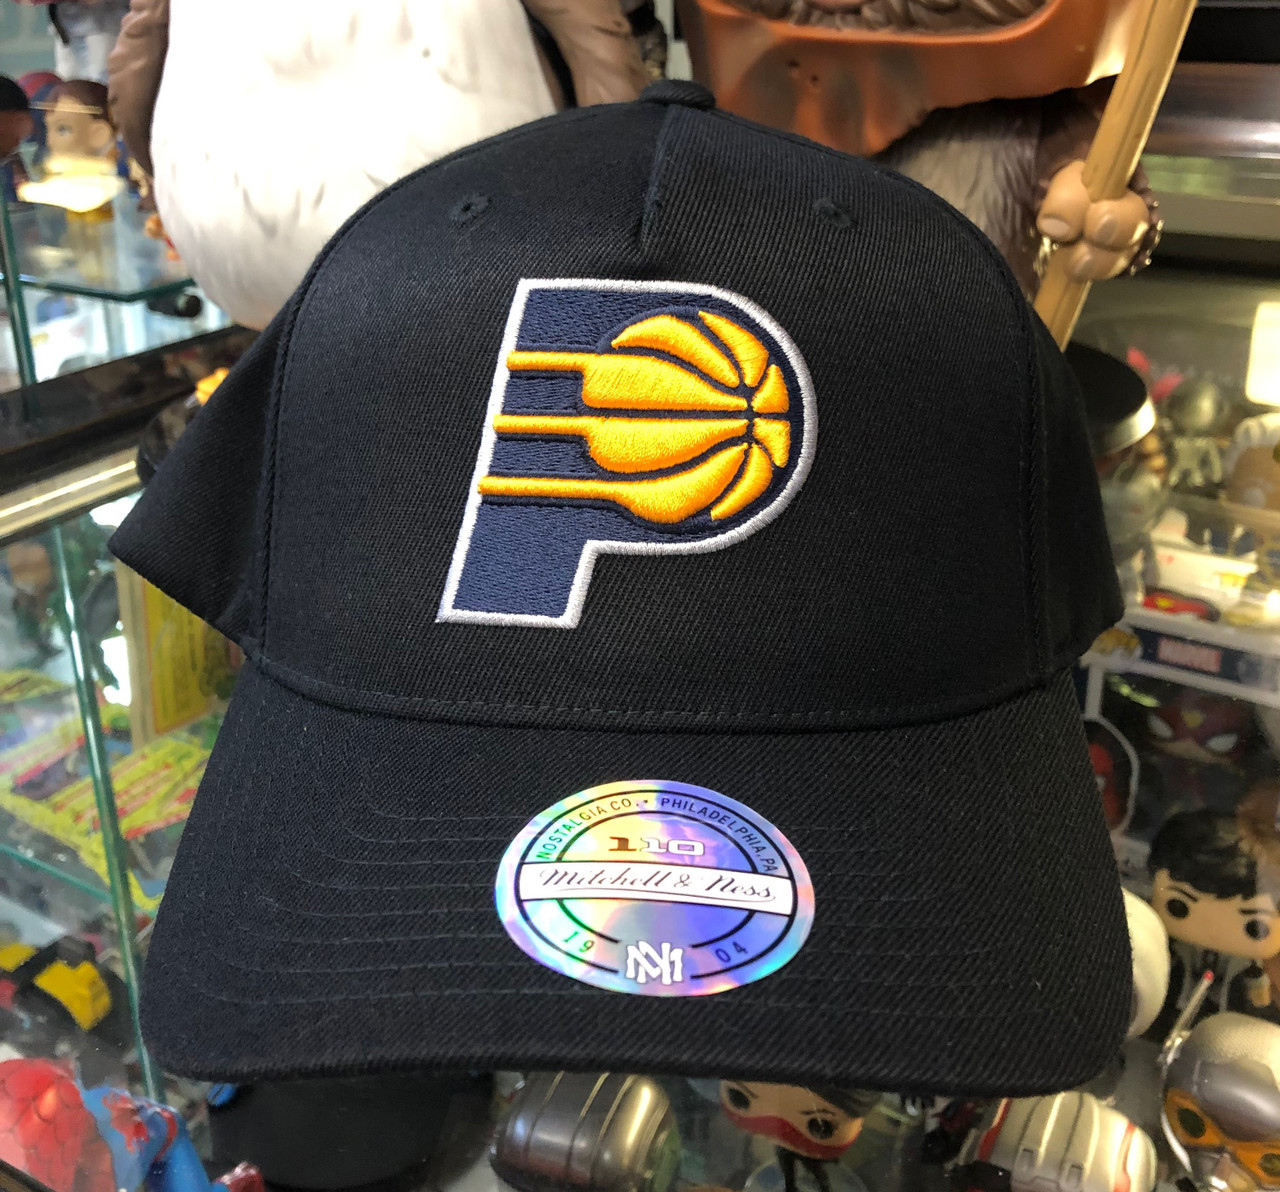 timeless design 9c1ed b1996 Indiana Pacers Flex Mitchell & Ness Snapback Hat